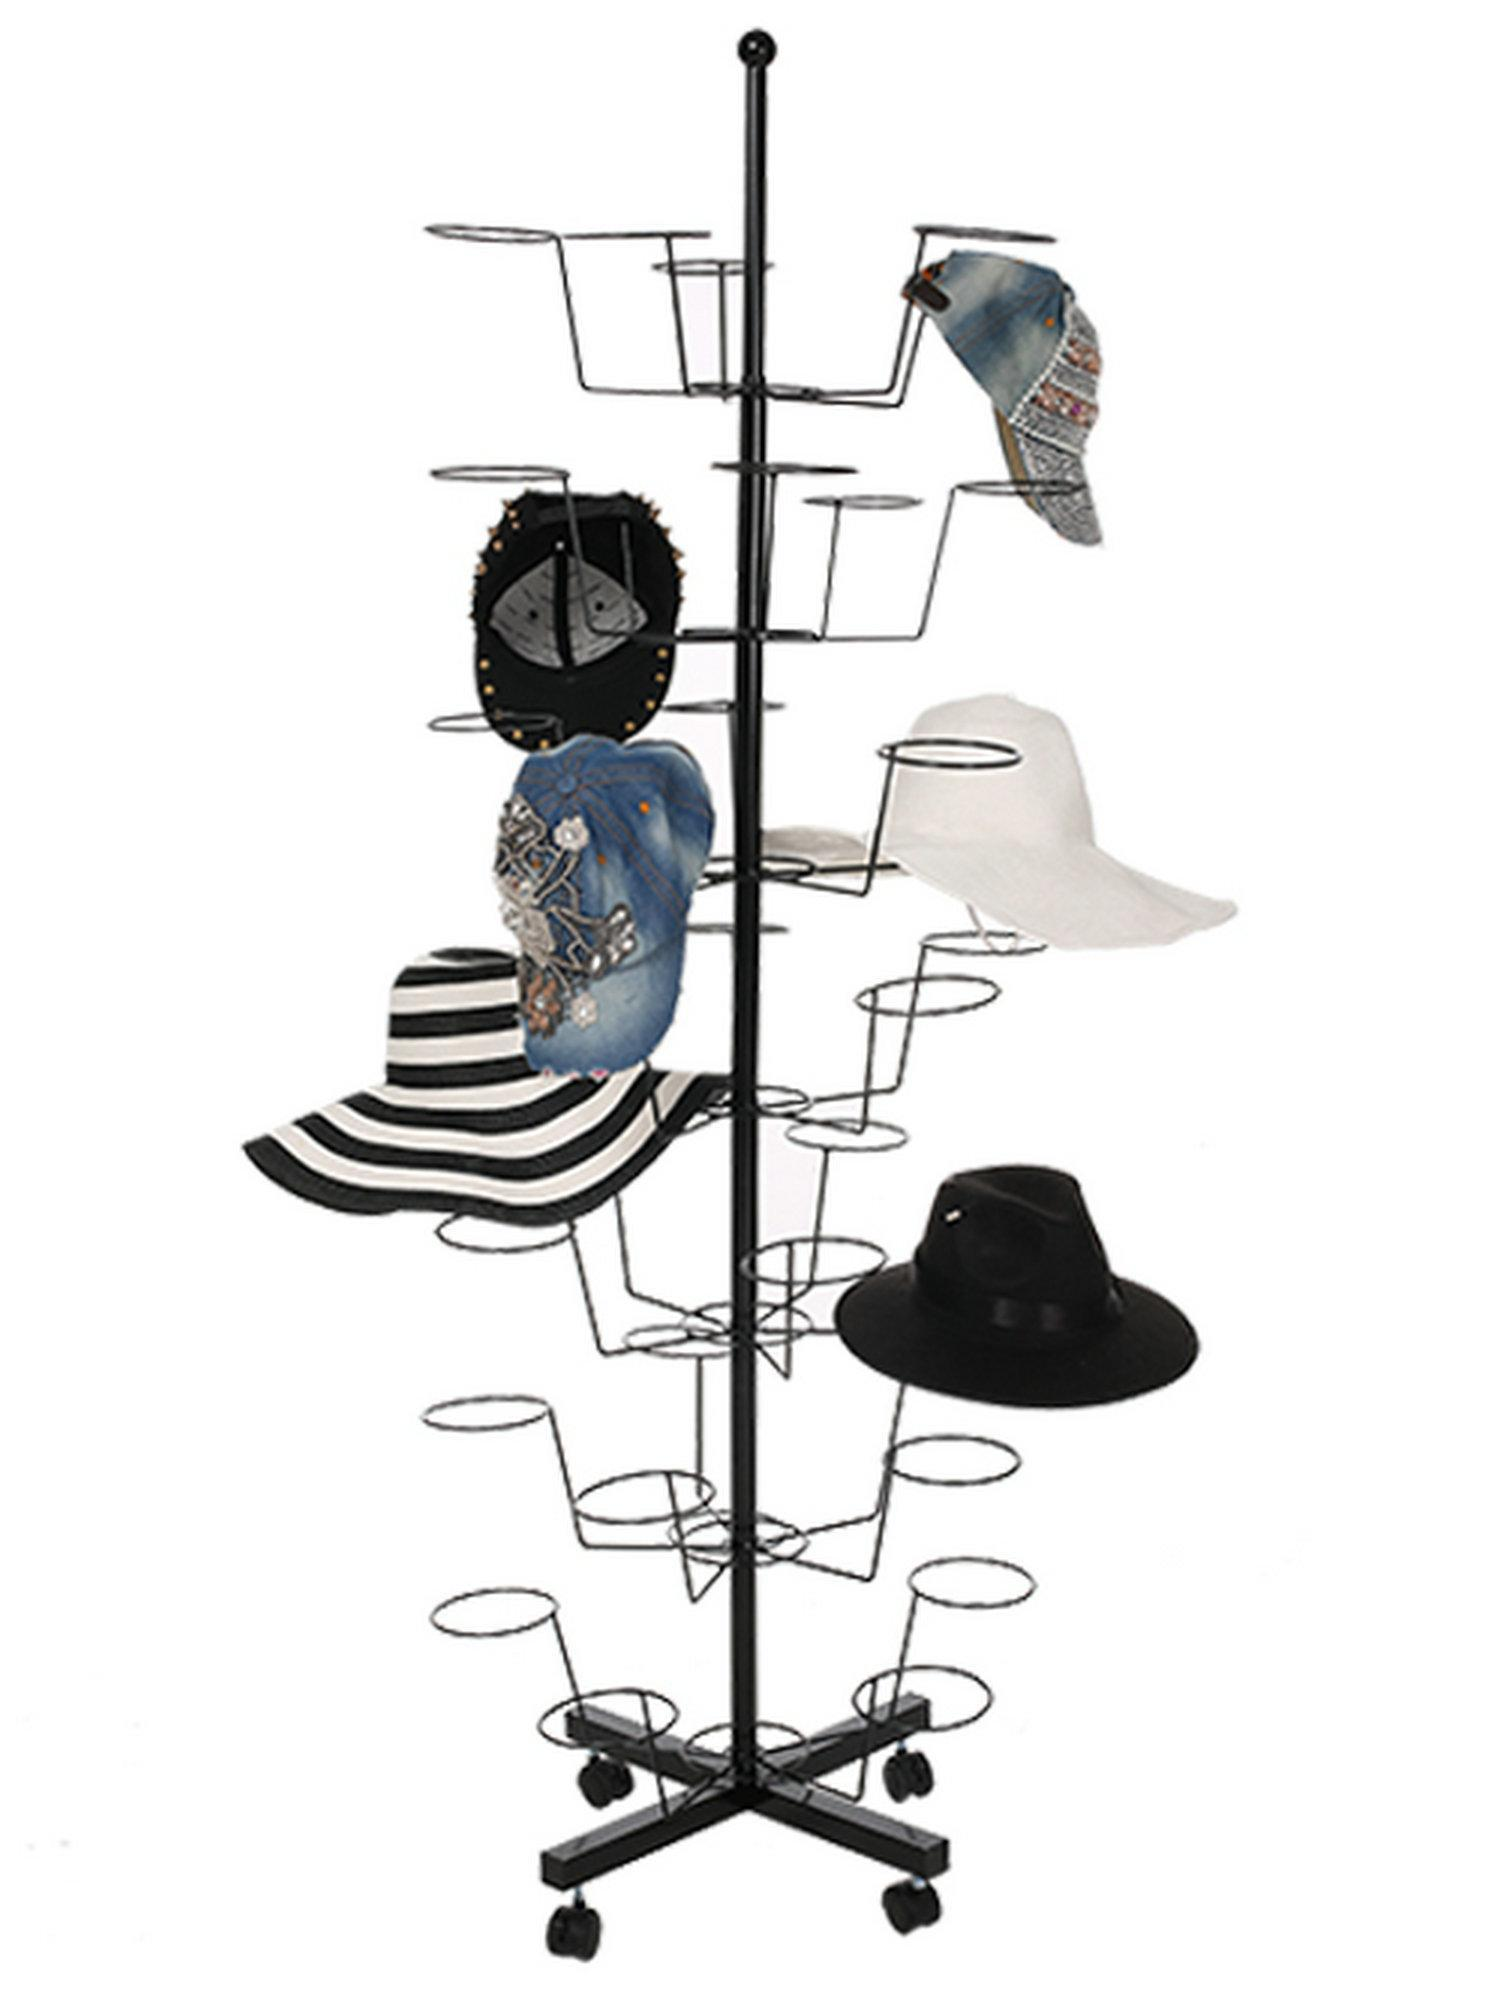 35 Pieces 7 Tiers Hat Display Stand Rack Stand Rotating Metal MAEHE by